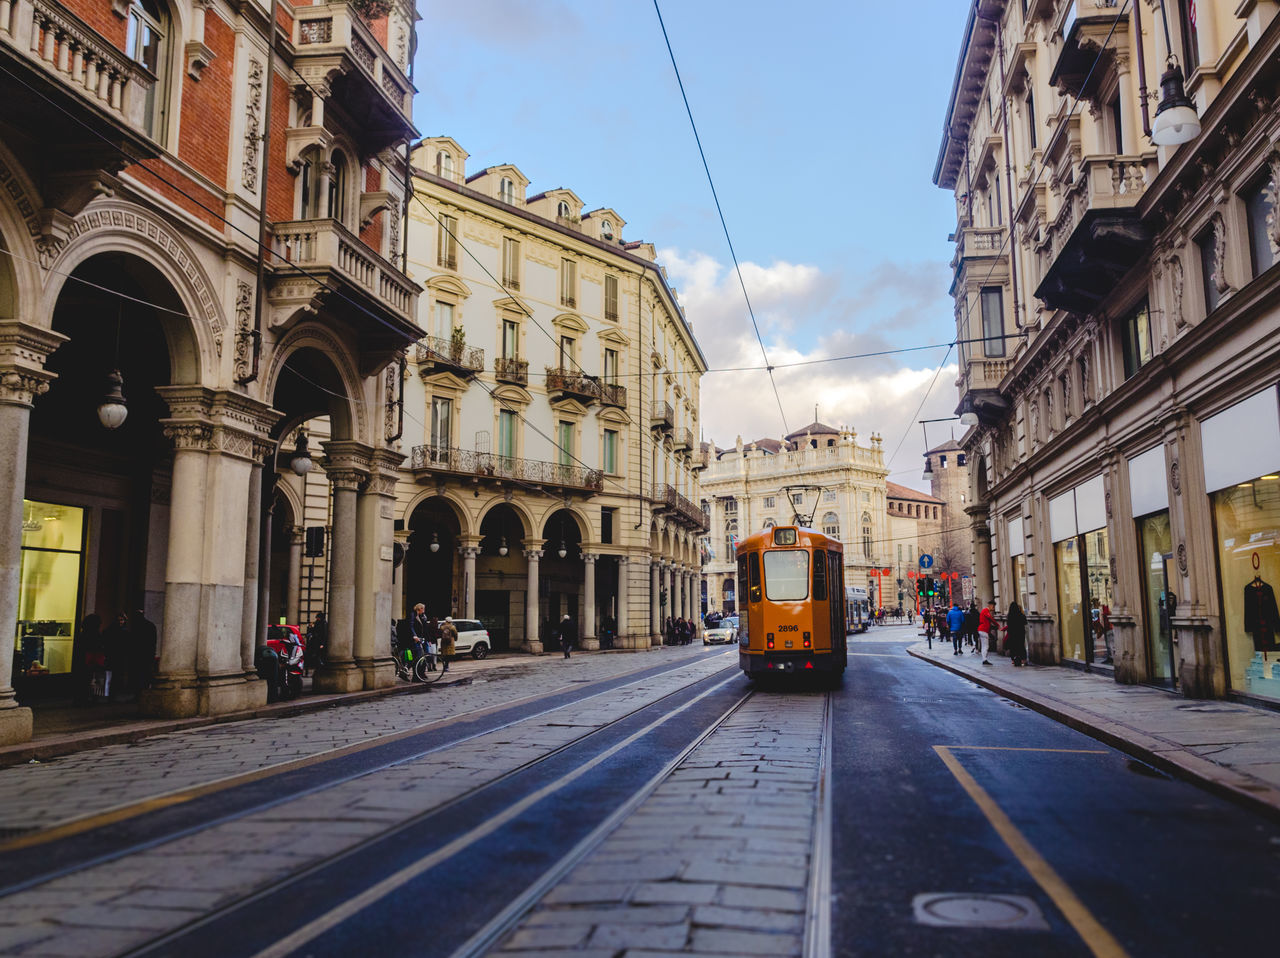 Torino street with tram N.15 Architecture Building Exterior Built Structure Cable Car City Day Dusk No People Outdoors Public Transportation Sky Sunset Torino Tram Tramway Transportation Travel Destinations